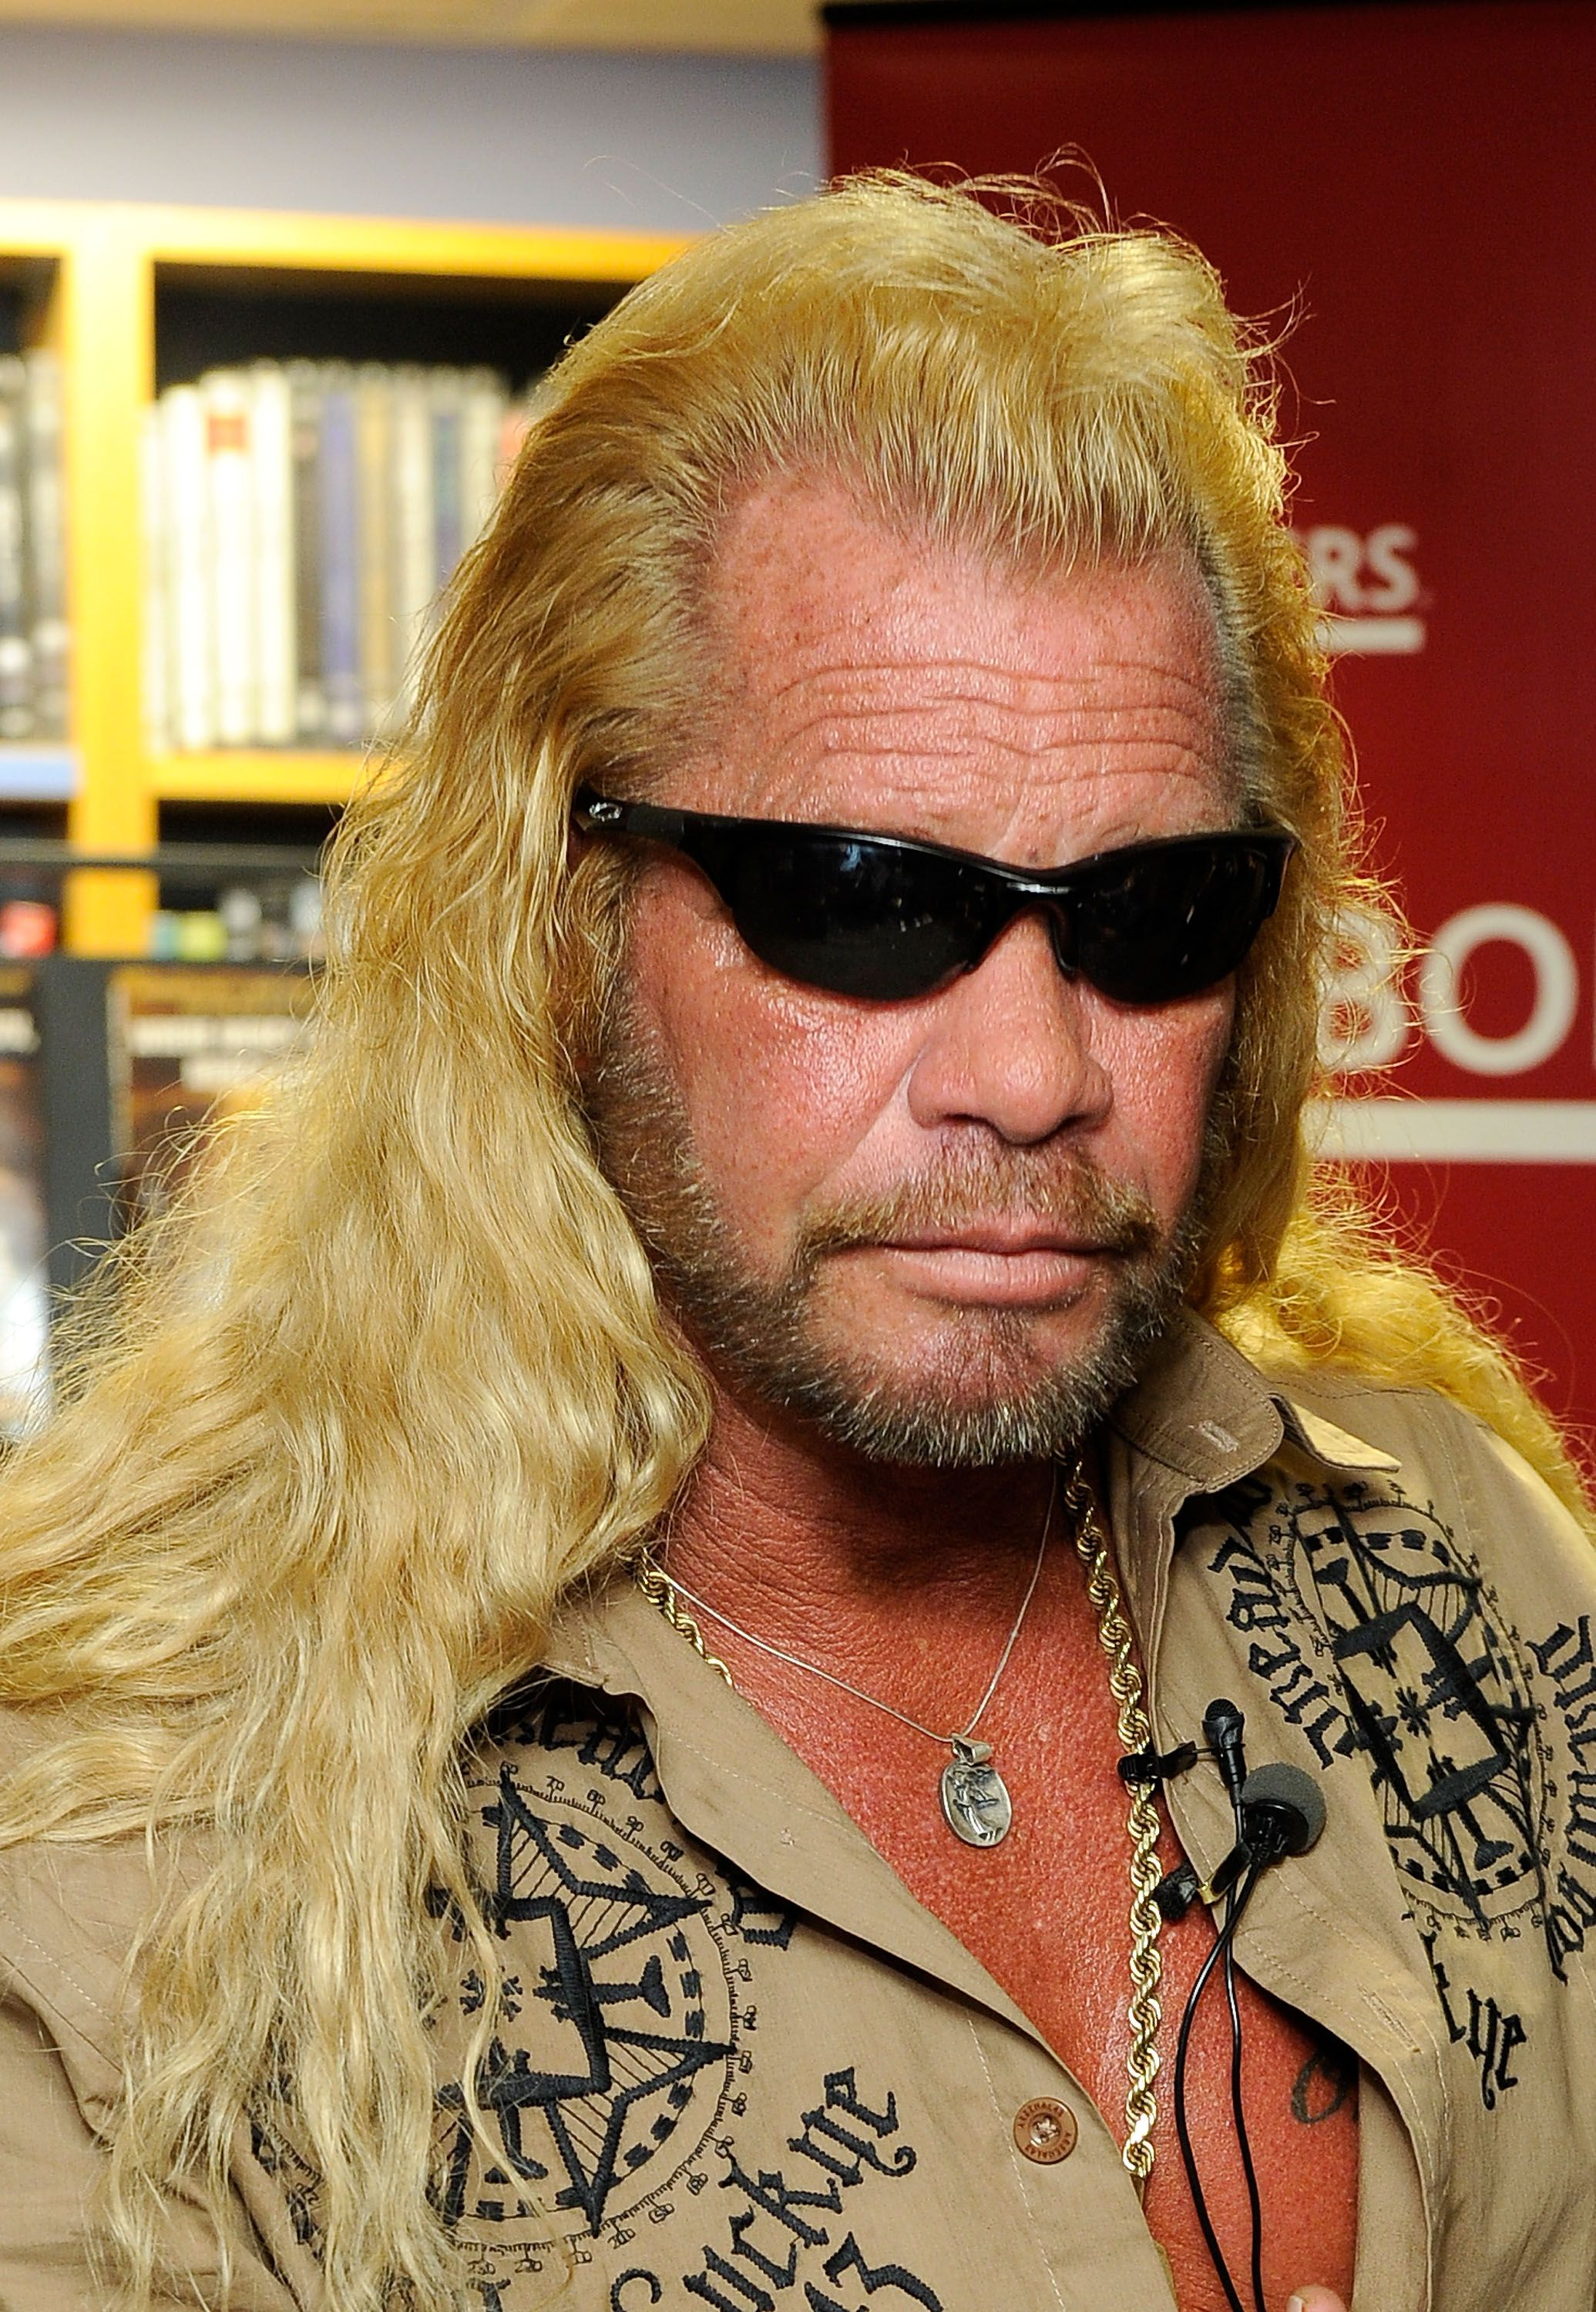 """Duane Chapman during his his book promotion """"When Mercy Is Shown, Mercy Is Given"""" at Borders Wall Street on March 19, 2010 in New York City. 